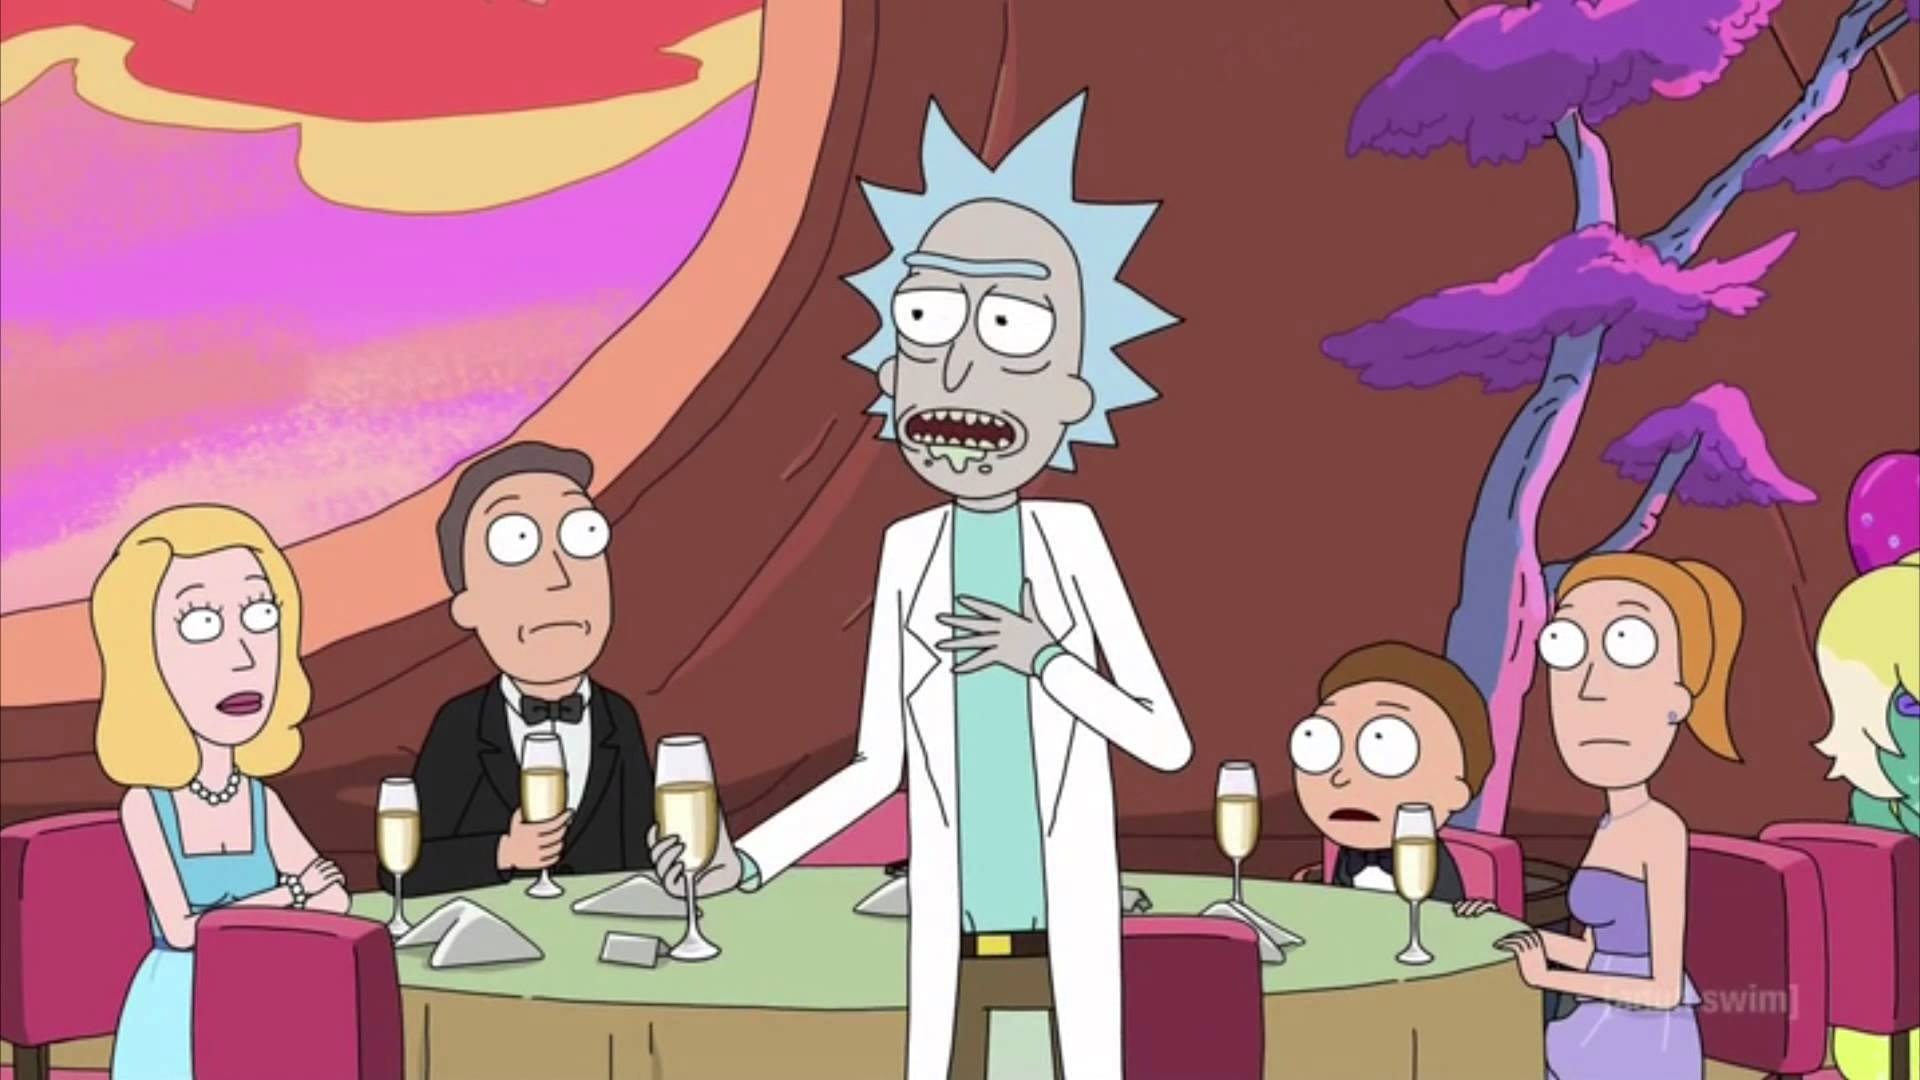 Rick Sanchez Quotes The 11 Best Rick And Morty Quotes In Honor Of Season 3's Return